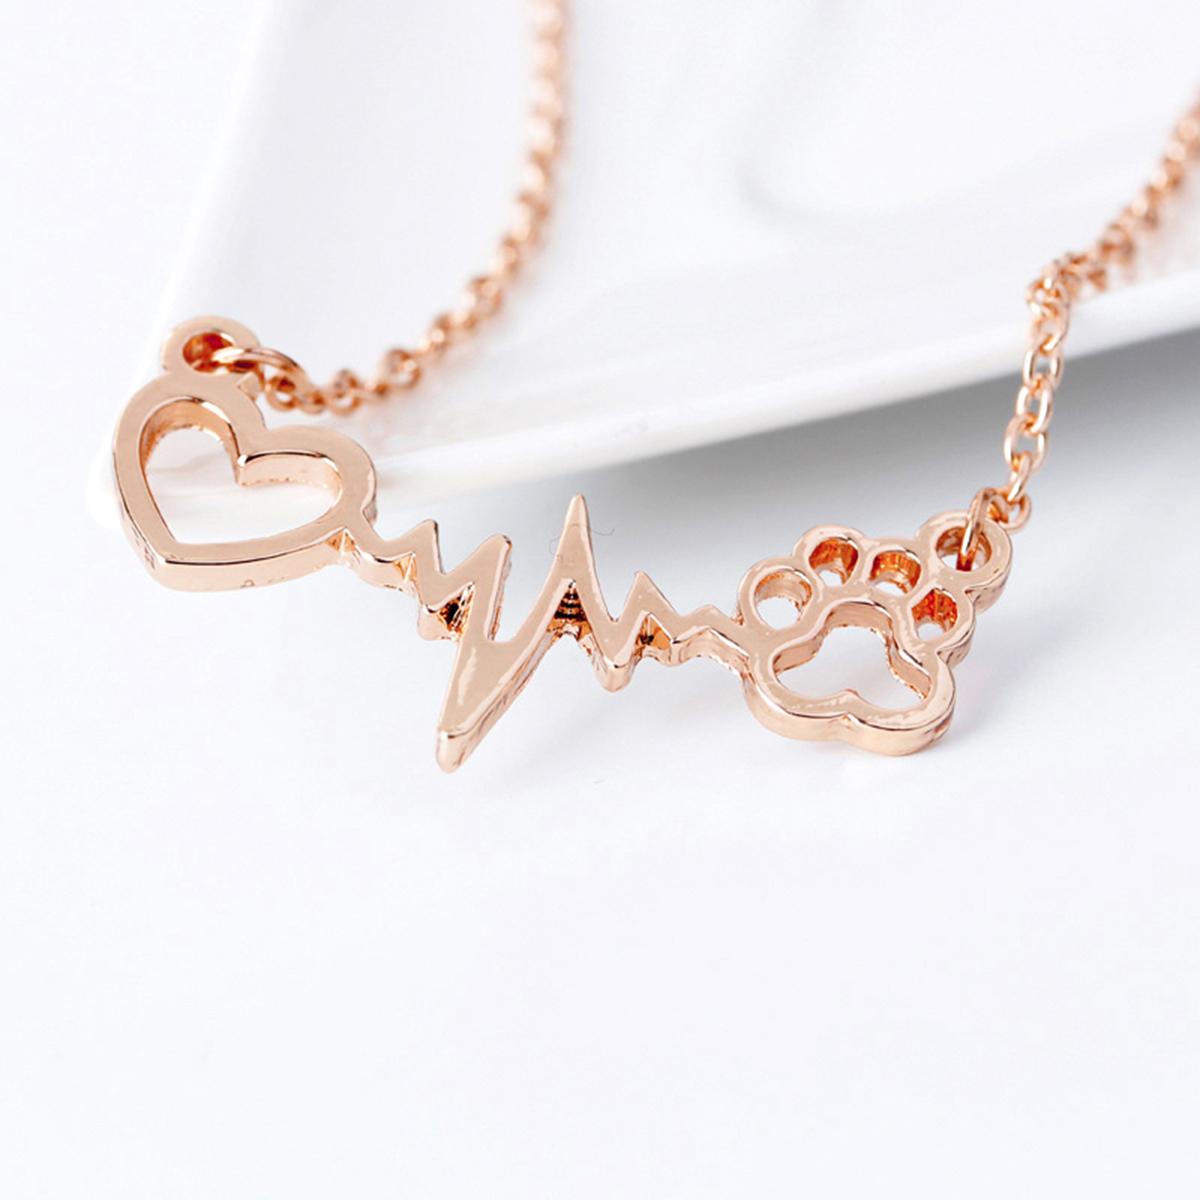 Cute Animal Vintage Jewelry Necklaces Silver Love Cats And Dogs Paws Love Heart Heartbeat Necklace Paw Print Pendants Neckalce